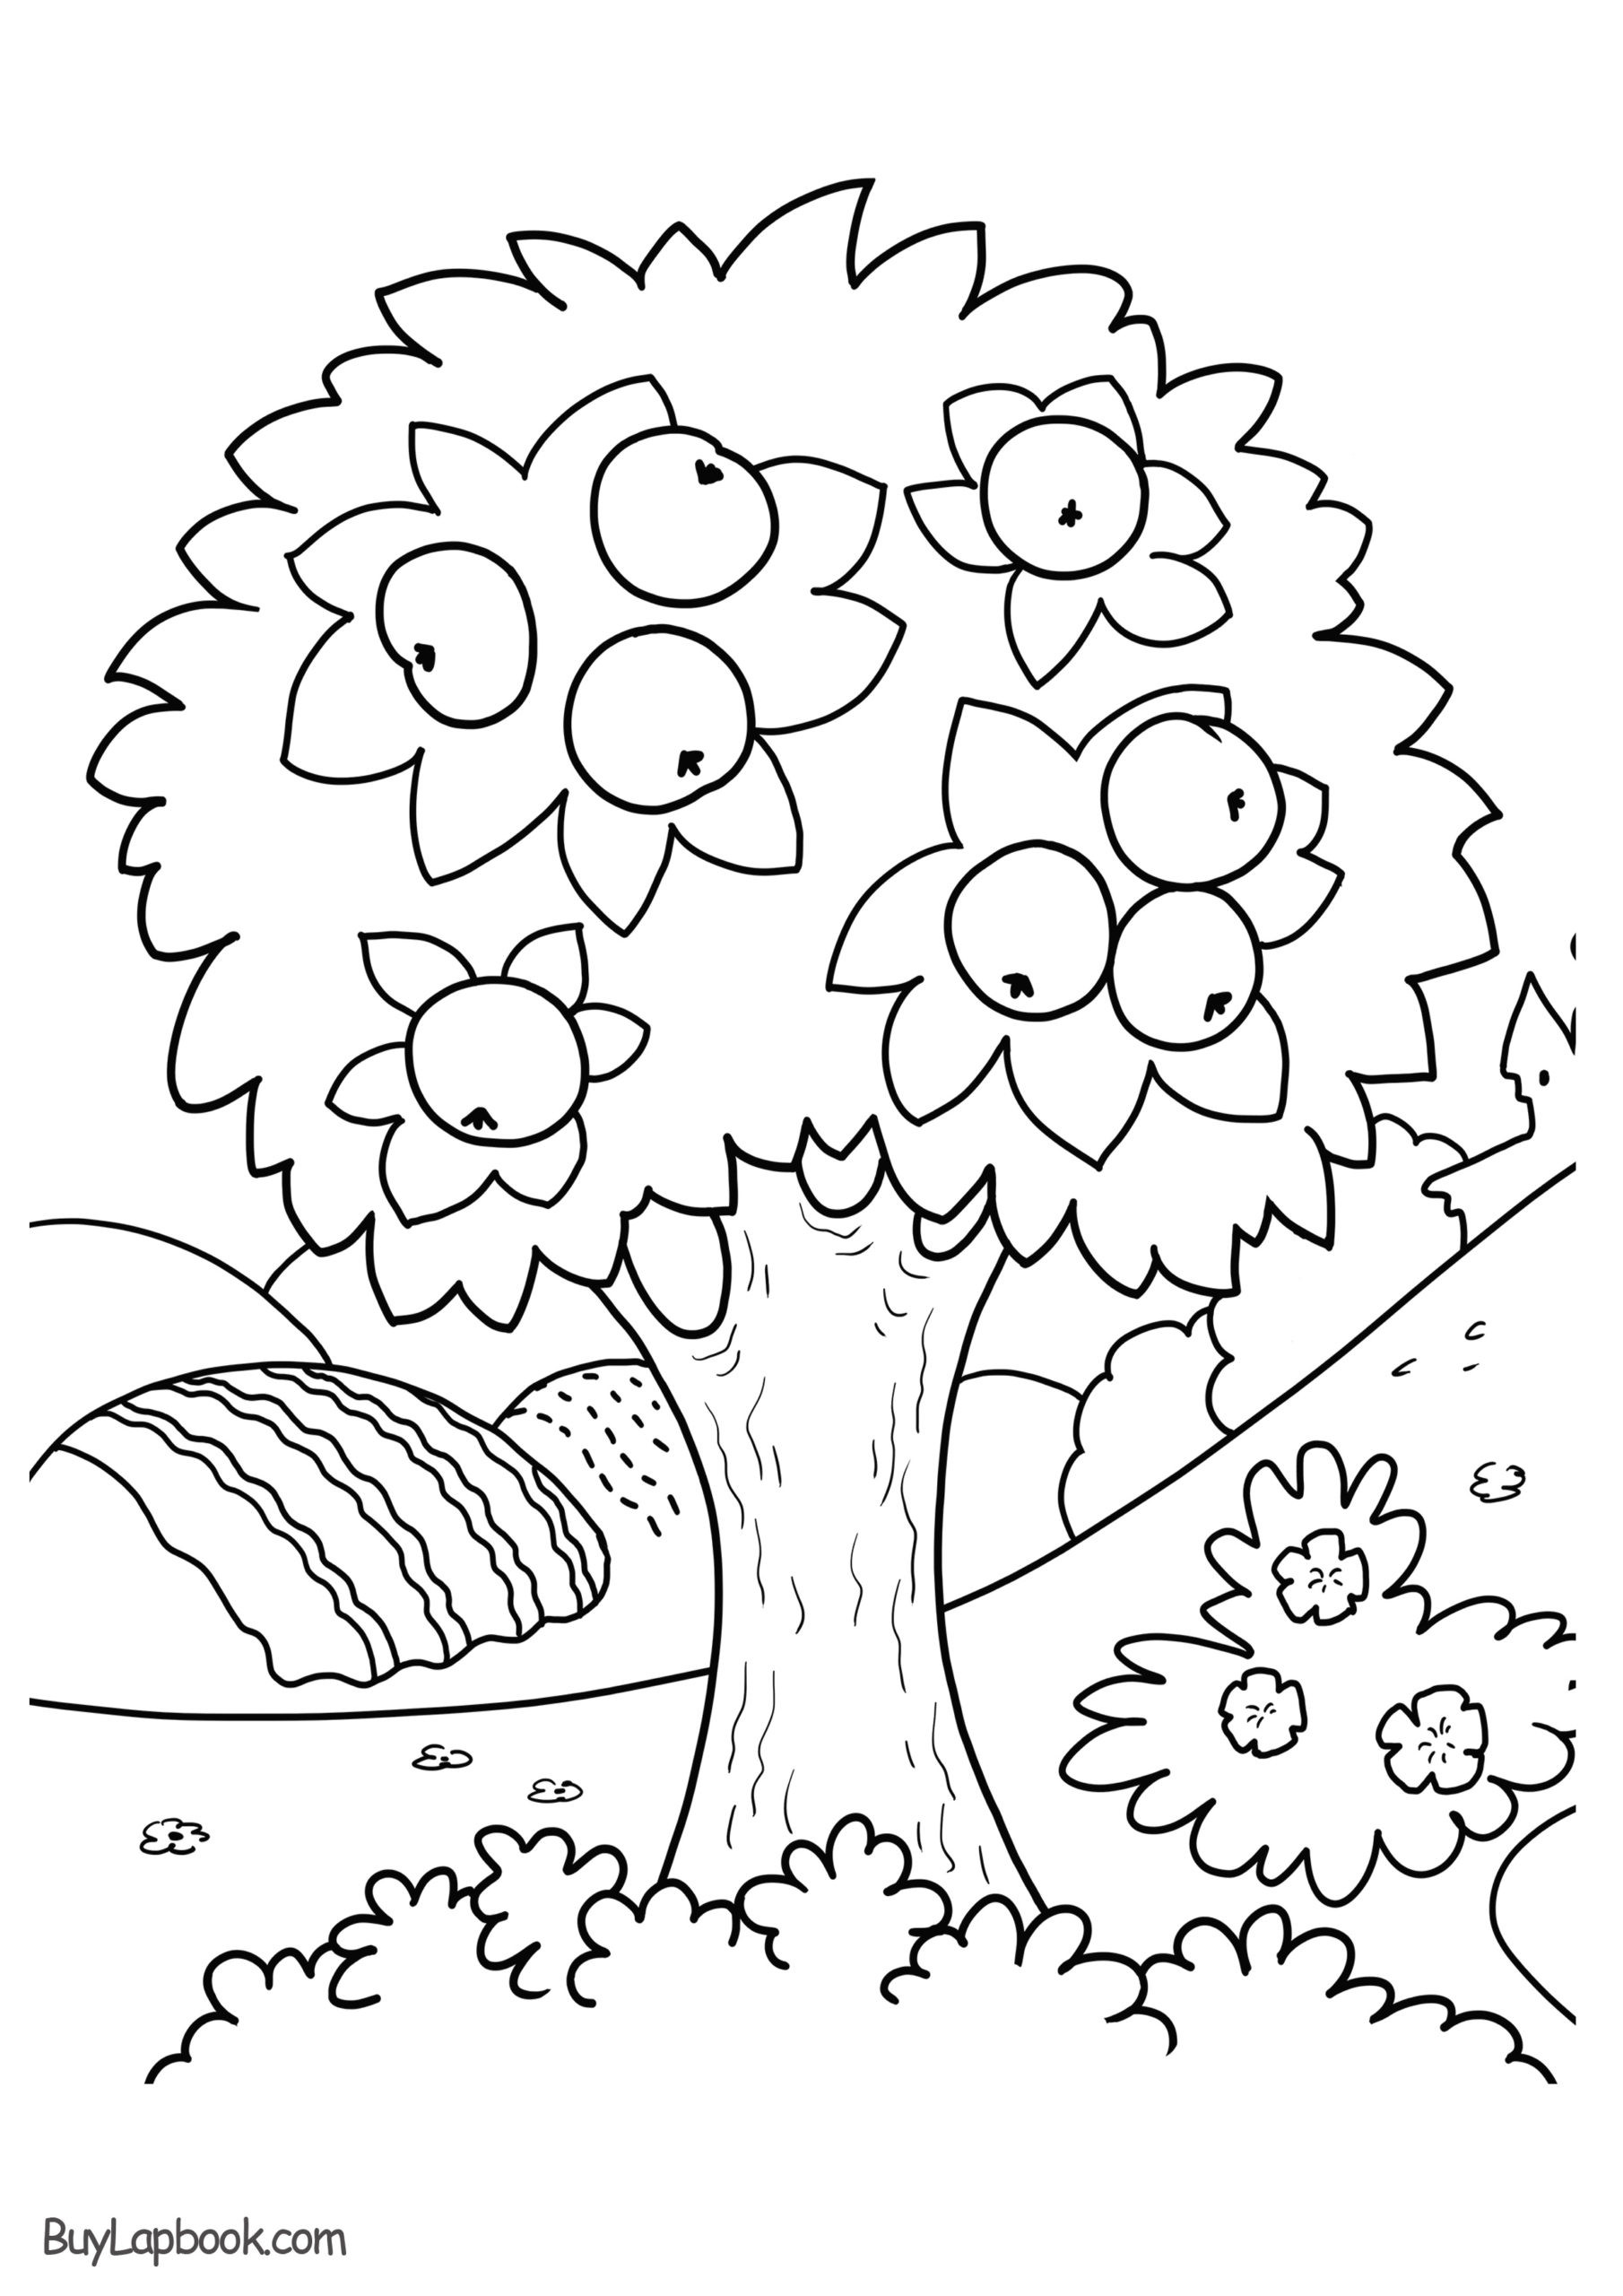 Seasons Worksheets for Preschoolers Coloring Apple Tree Free Printable Buylapbook Preschool